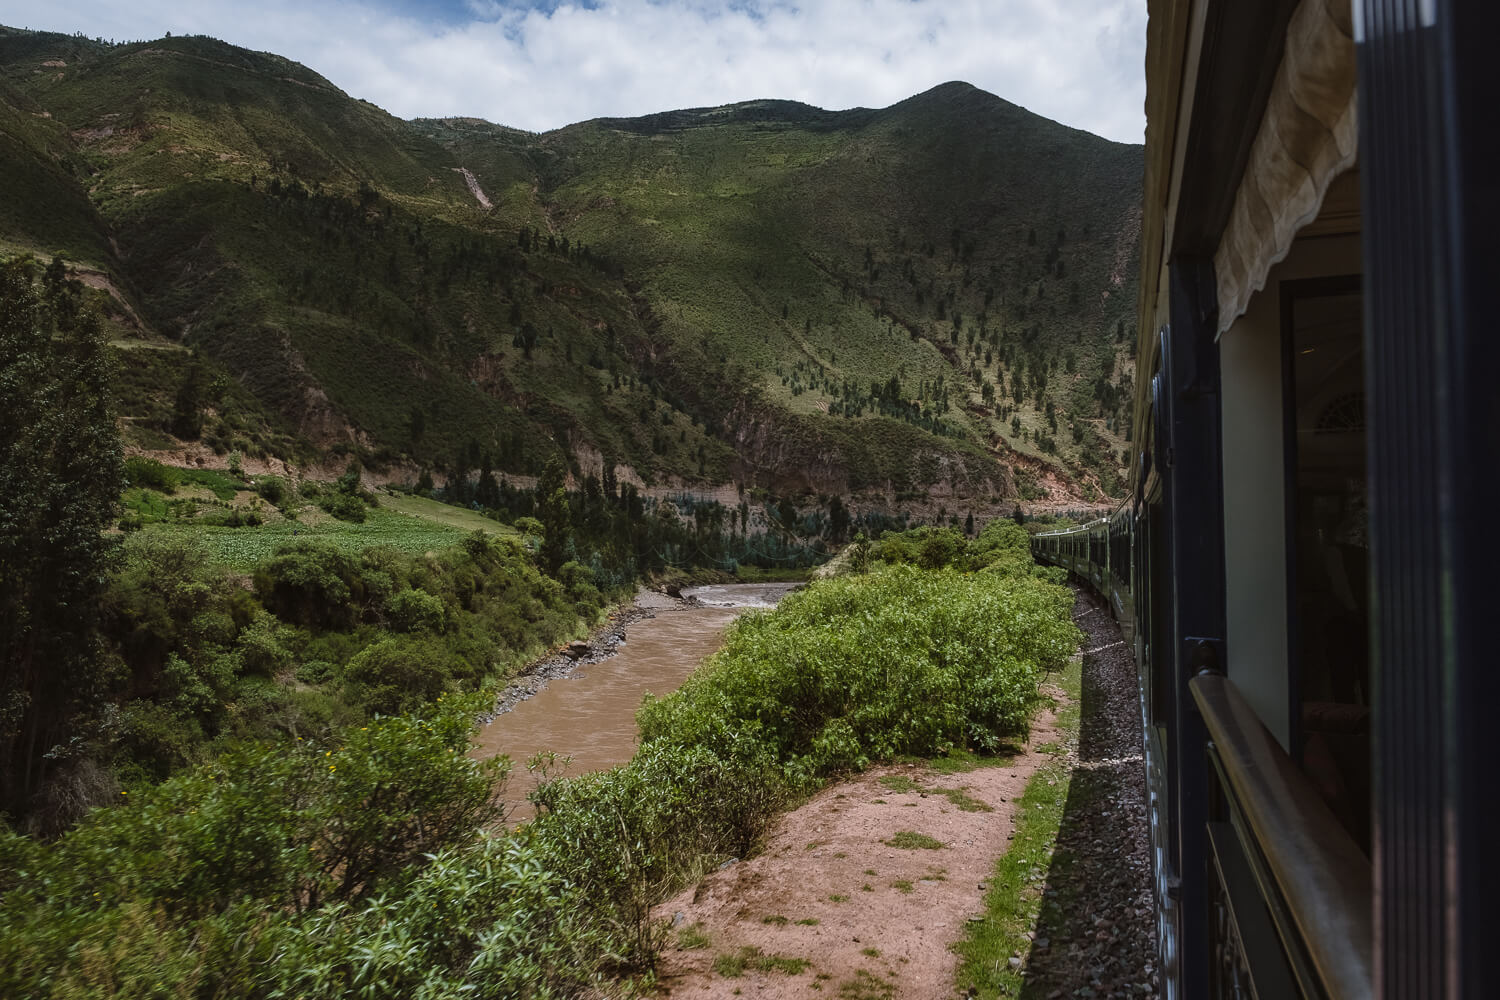 """Views of the Sacred Valley on the Belmond Andean Explorer. Travel photography and guide by © Natasha Lequepeys for """"And Then I Met Yoko"""". #peru #sacredvalley #patacancha #photoblog #travelblog #travelphotography #portraitphotography #travelitinerary #fujifilm #weaving #tradition #culture #people #andes #village #weavingdemonstration #cusco #ollantaytambo #travel #travelperu"""